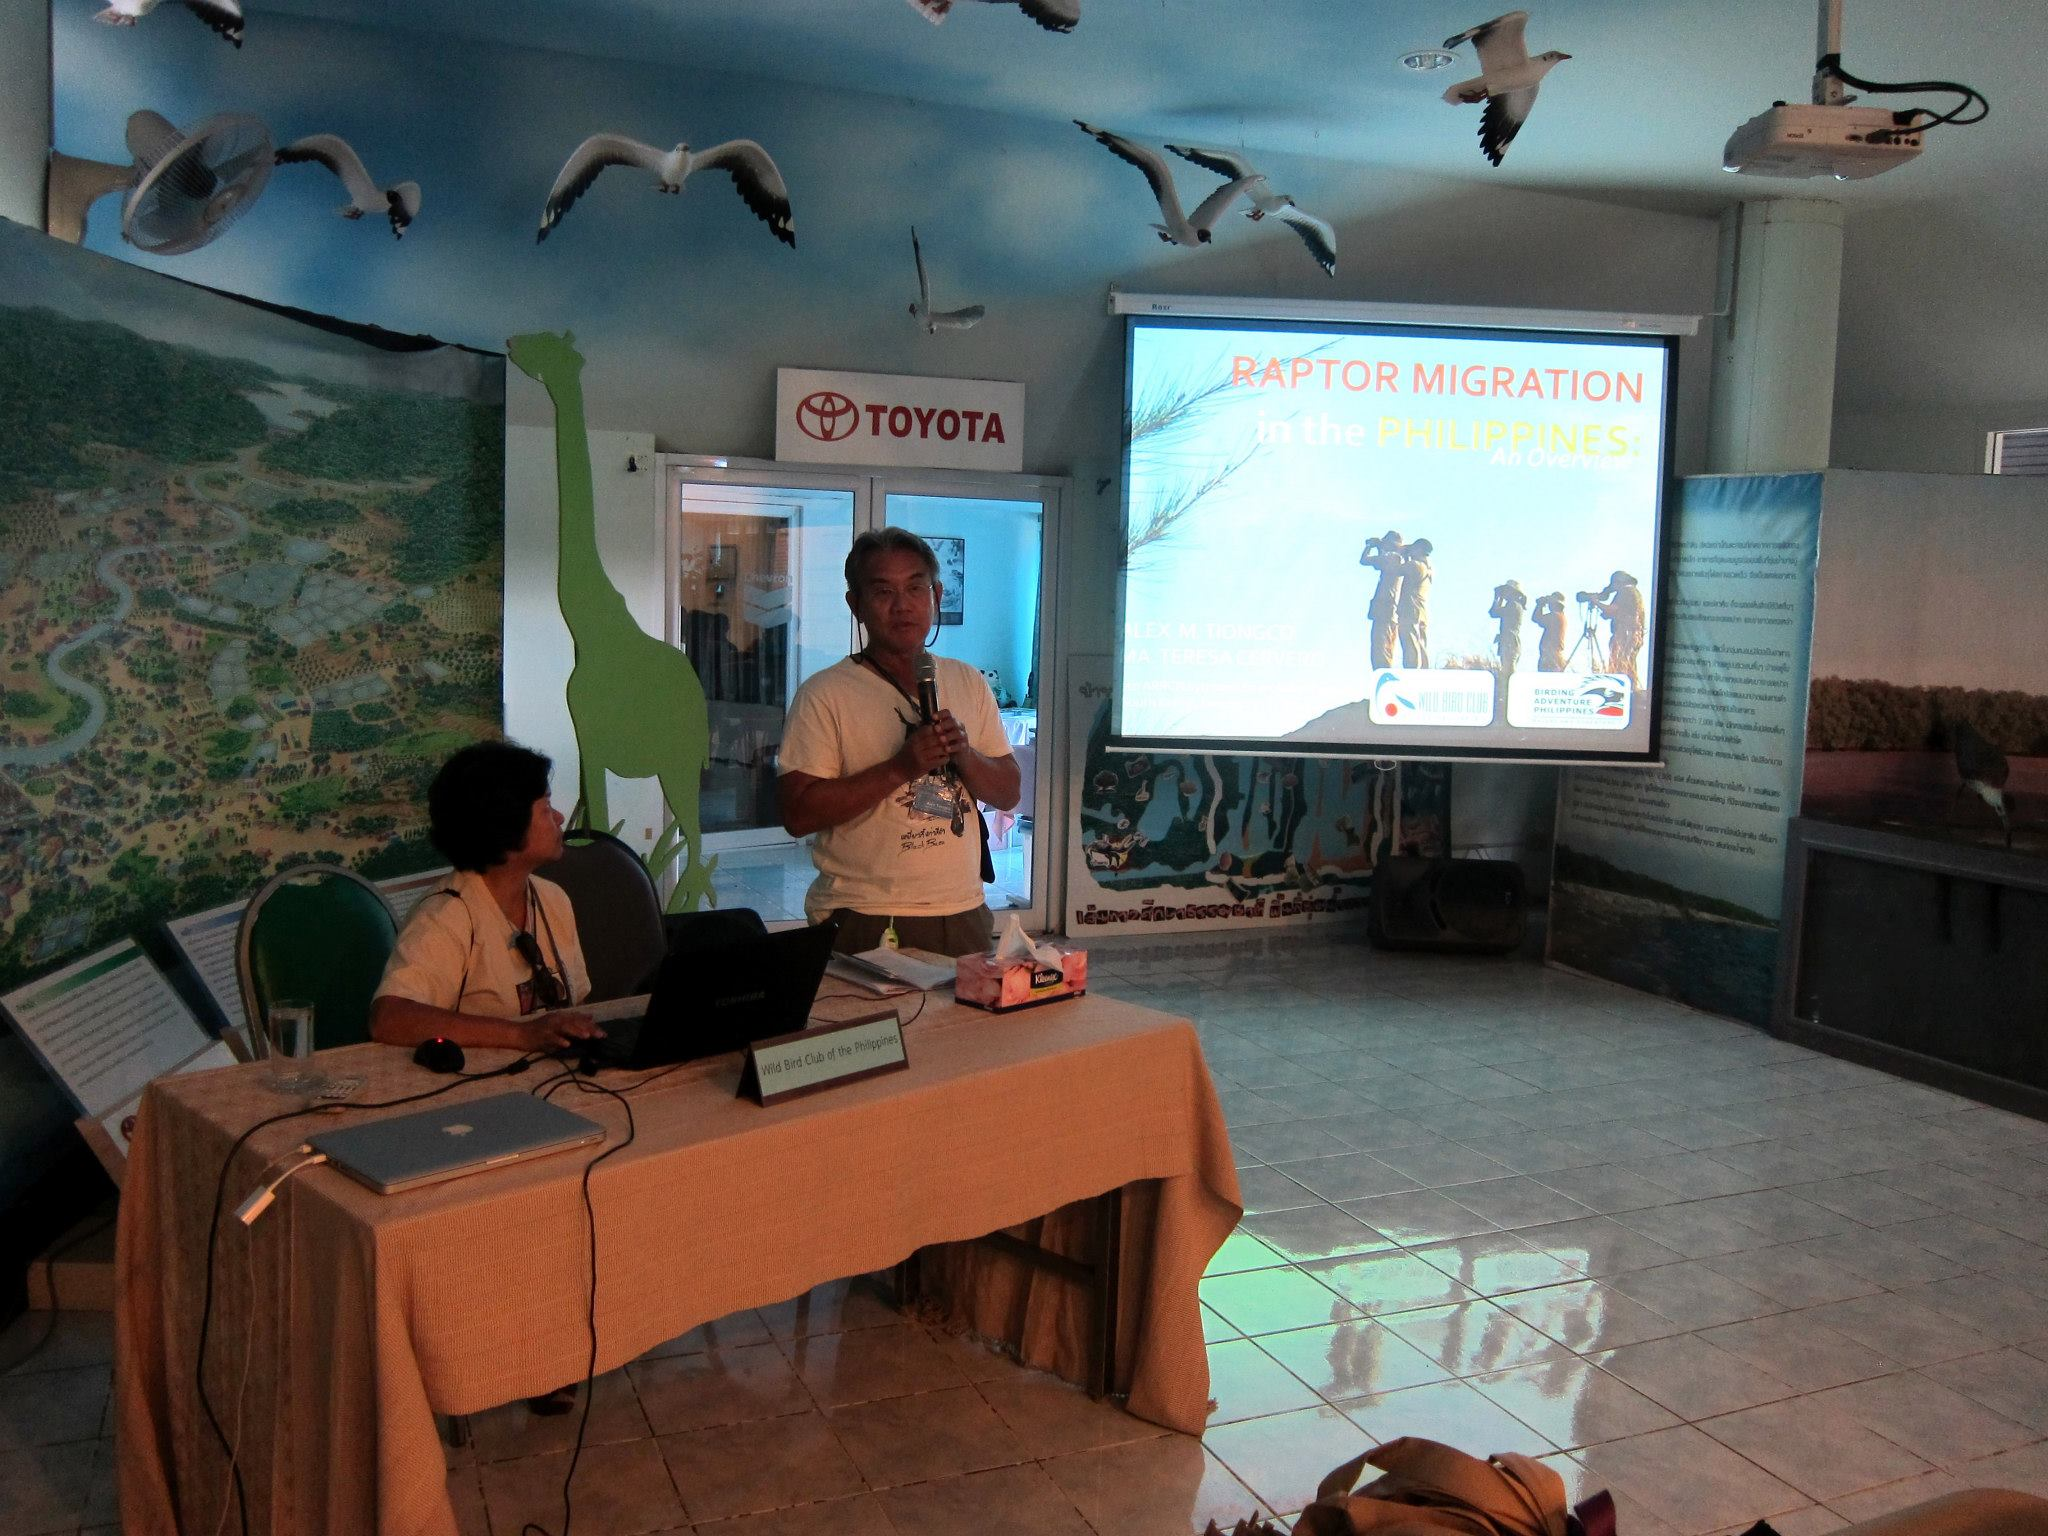 Tere (seated) and Alex do a presentation on Raptor Migration in the Philippines. Photo from Tere Cervero